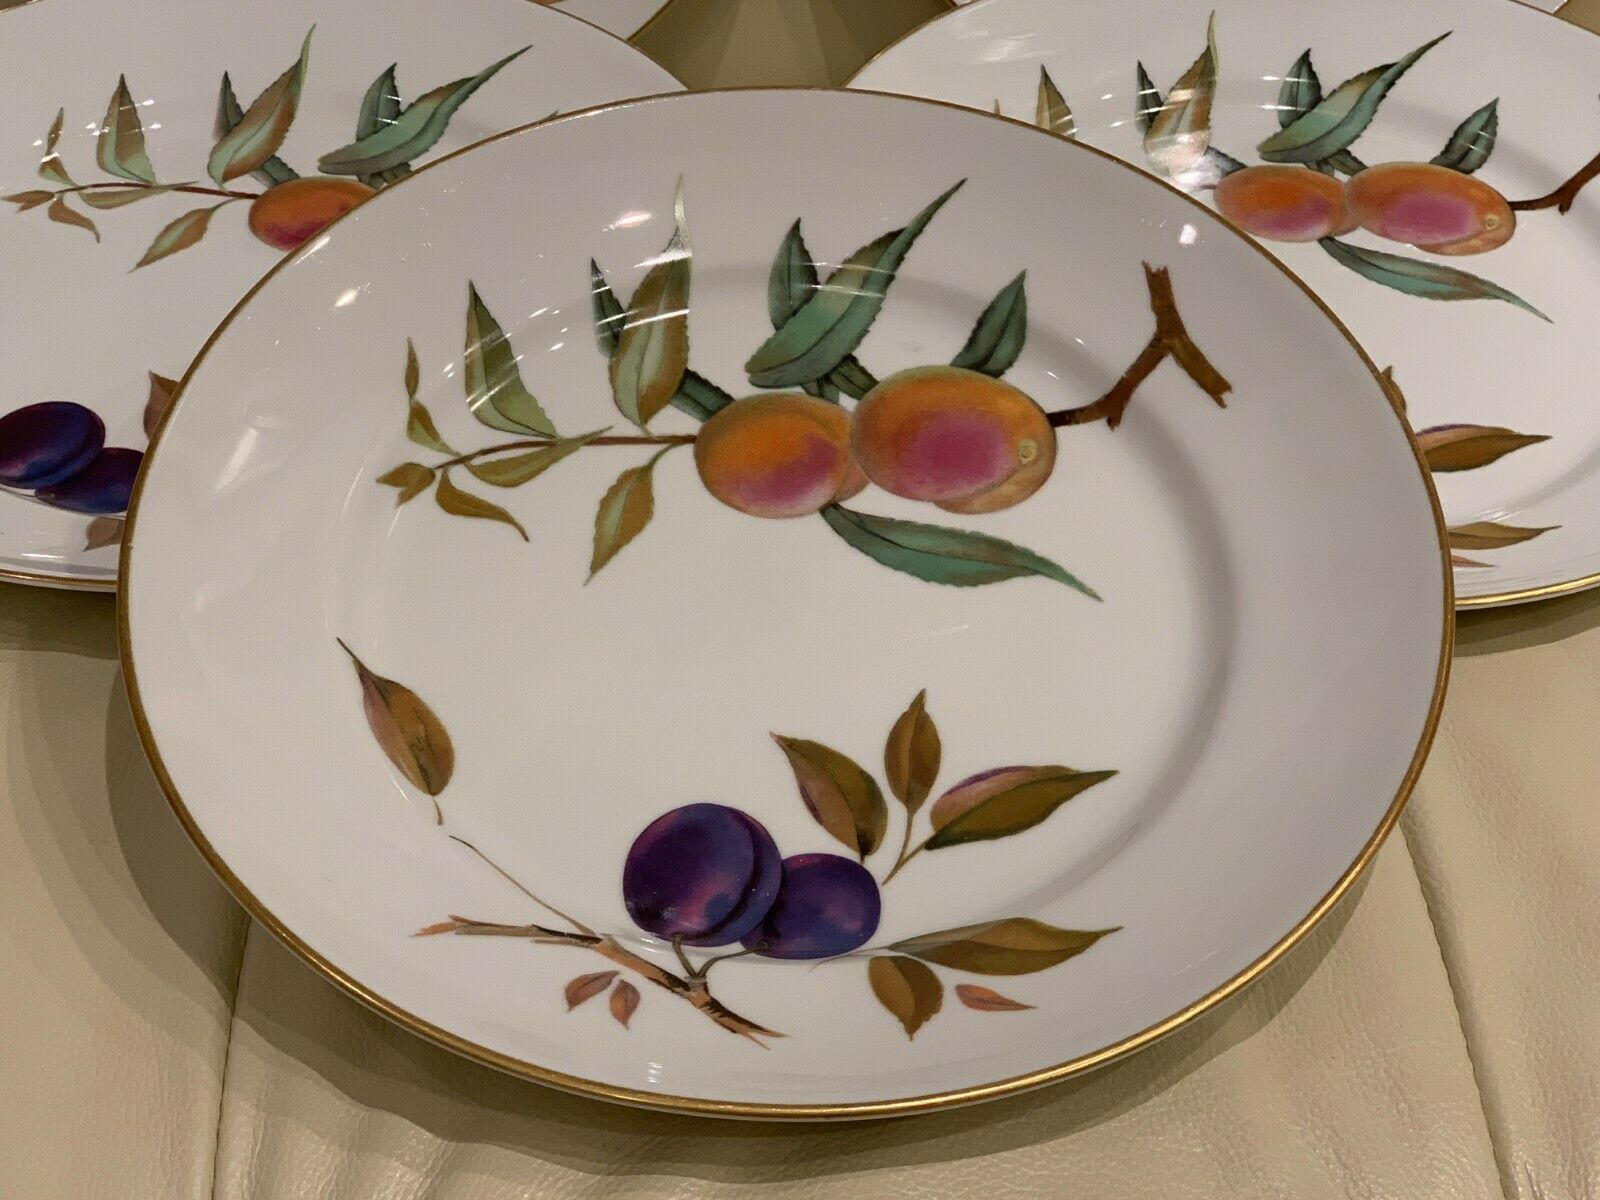 Royal Worcester EVESHAM Peaches and Plums Gold Rimmed Dinner Plates Set of 5